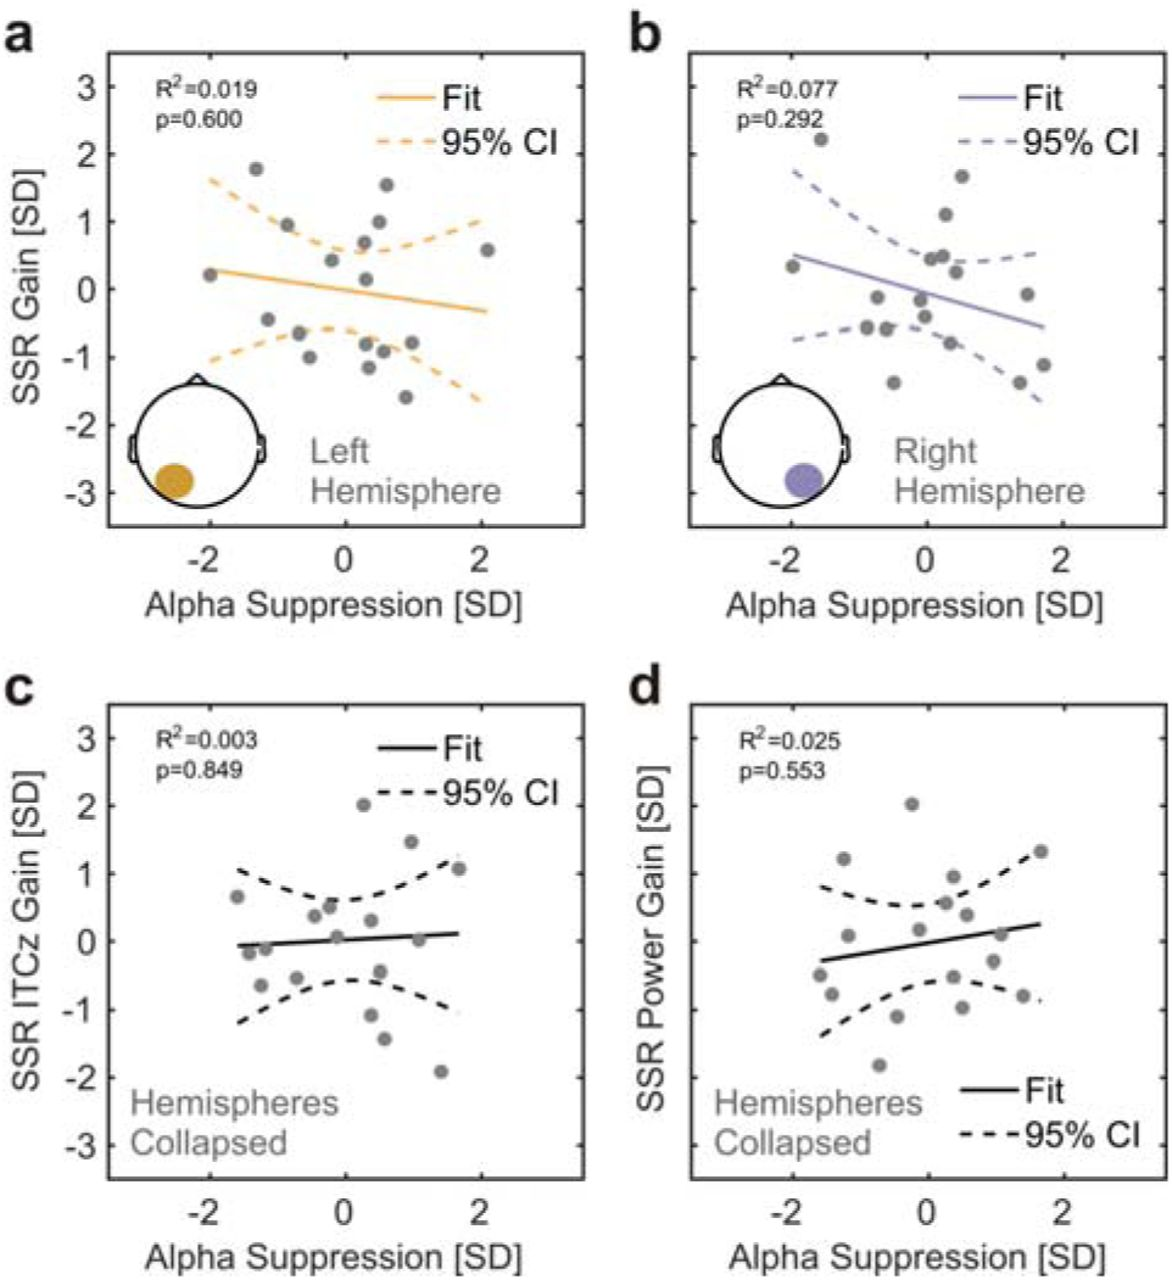 Stimulus-driven brain rhythms within the alpha band: The